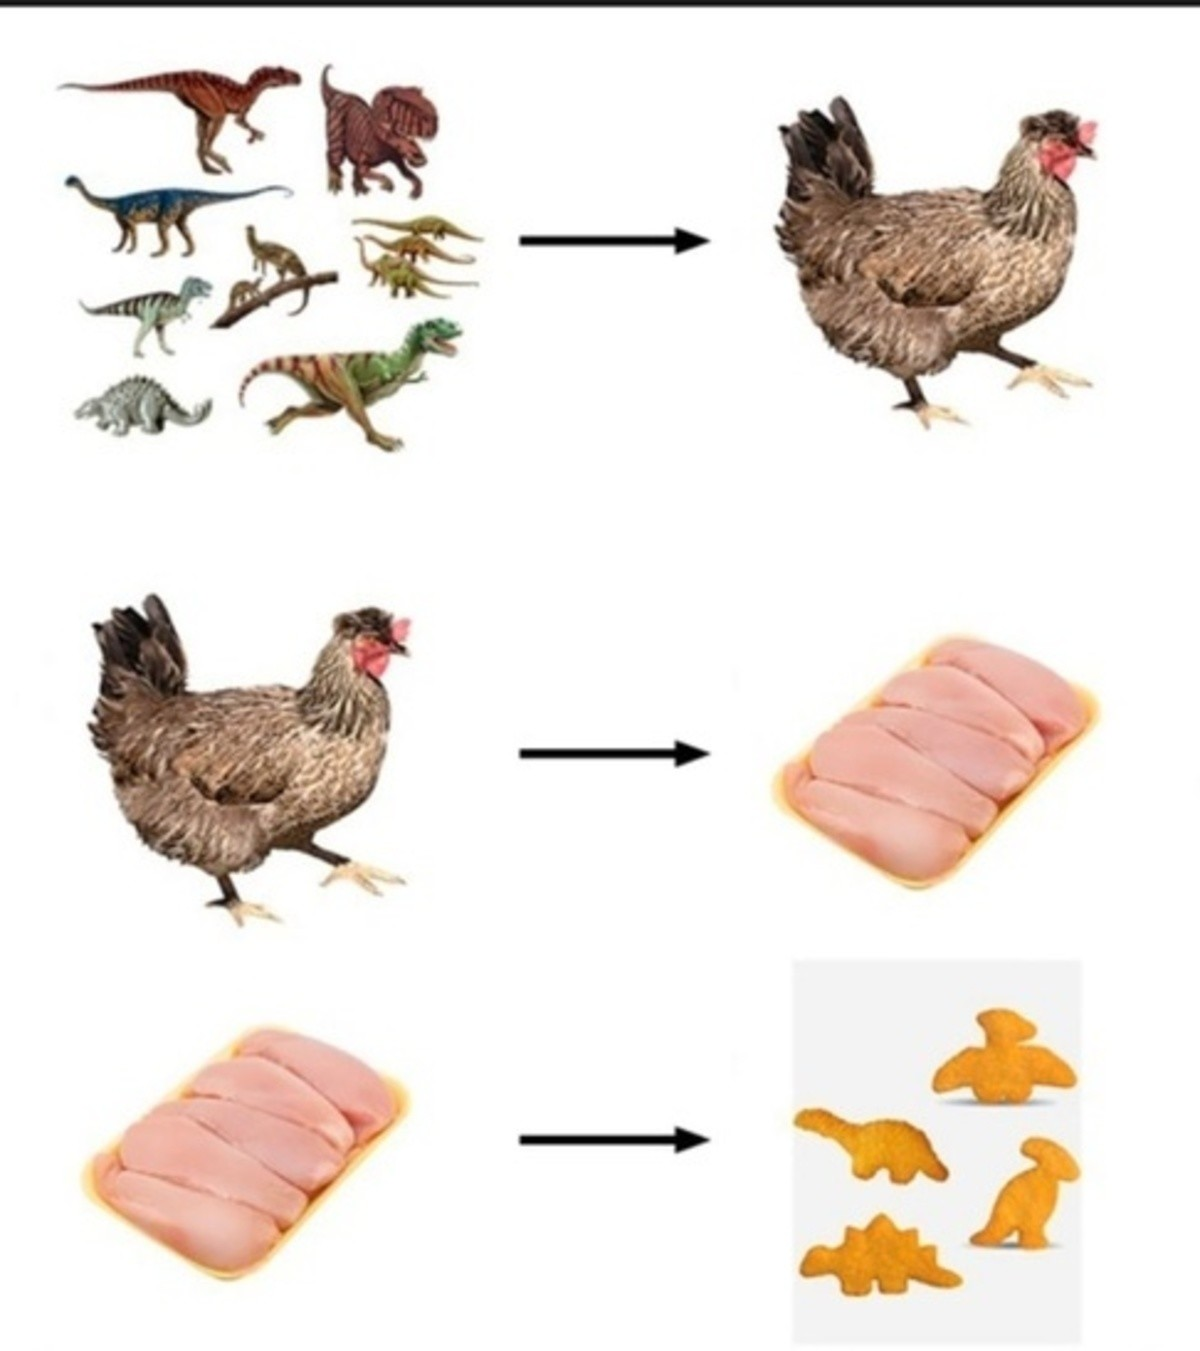 It's evolution baby. .. 1 chicken has 5 breasts in it and comes from 12 dinosaur